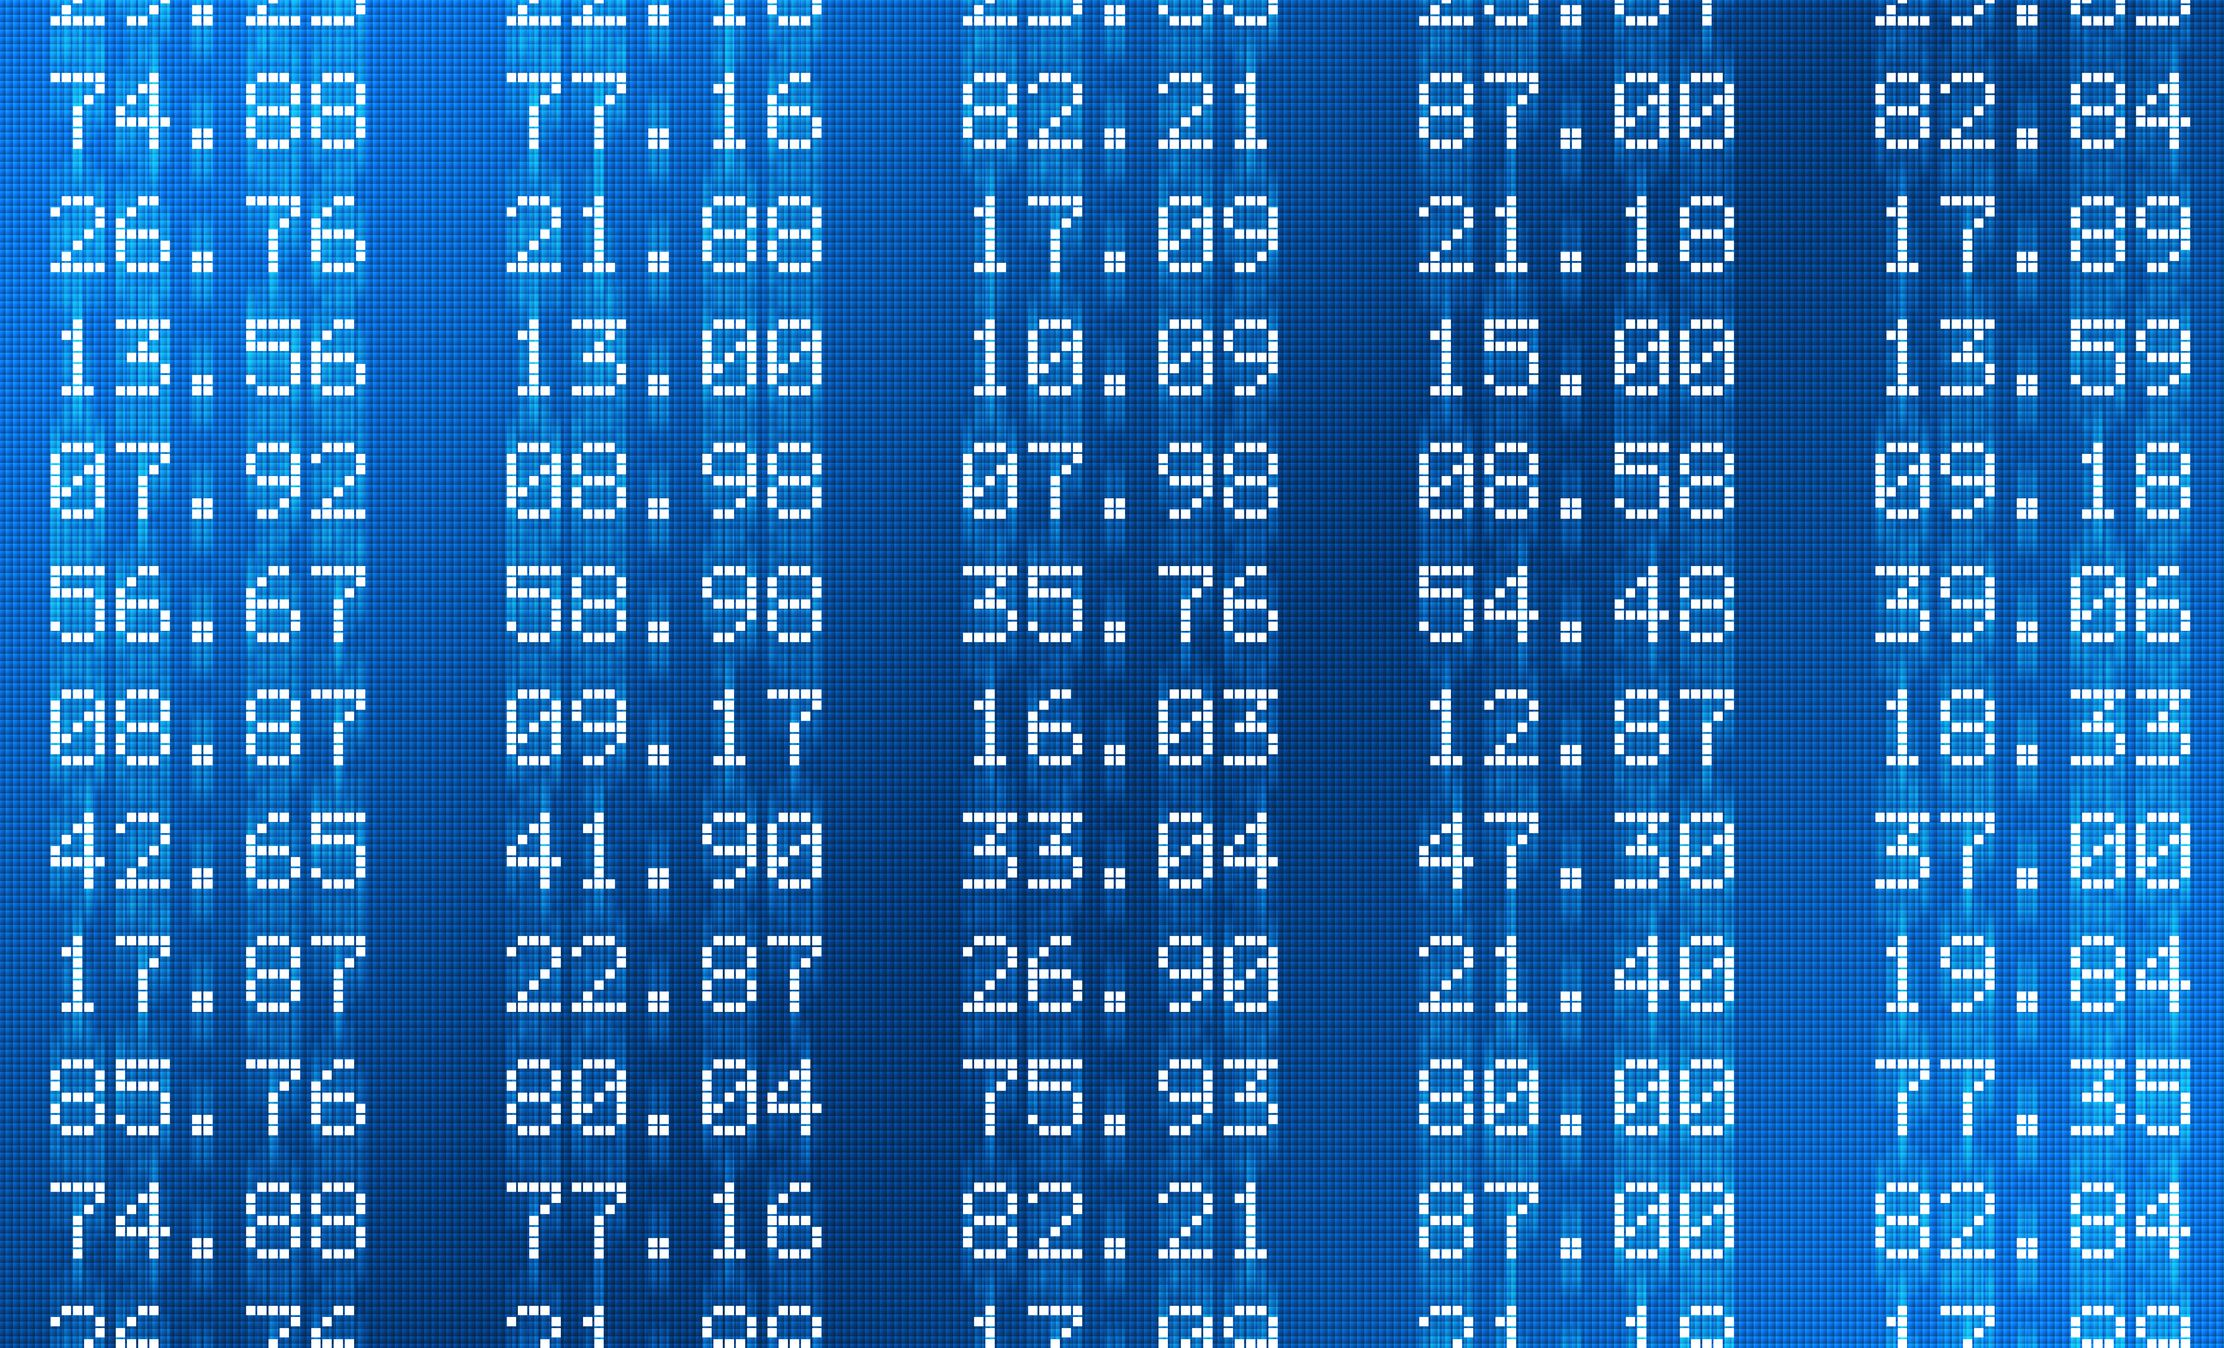 Simple Rules For Rounding Numbers Correctly